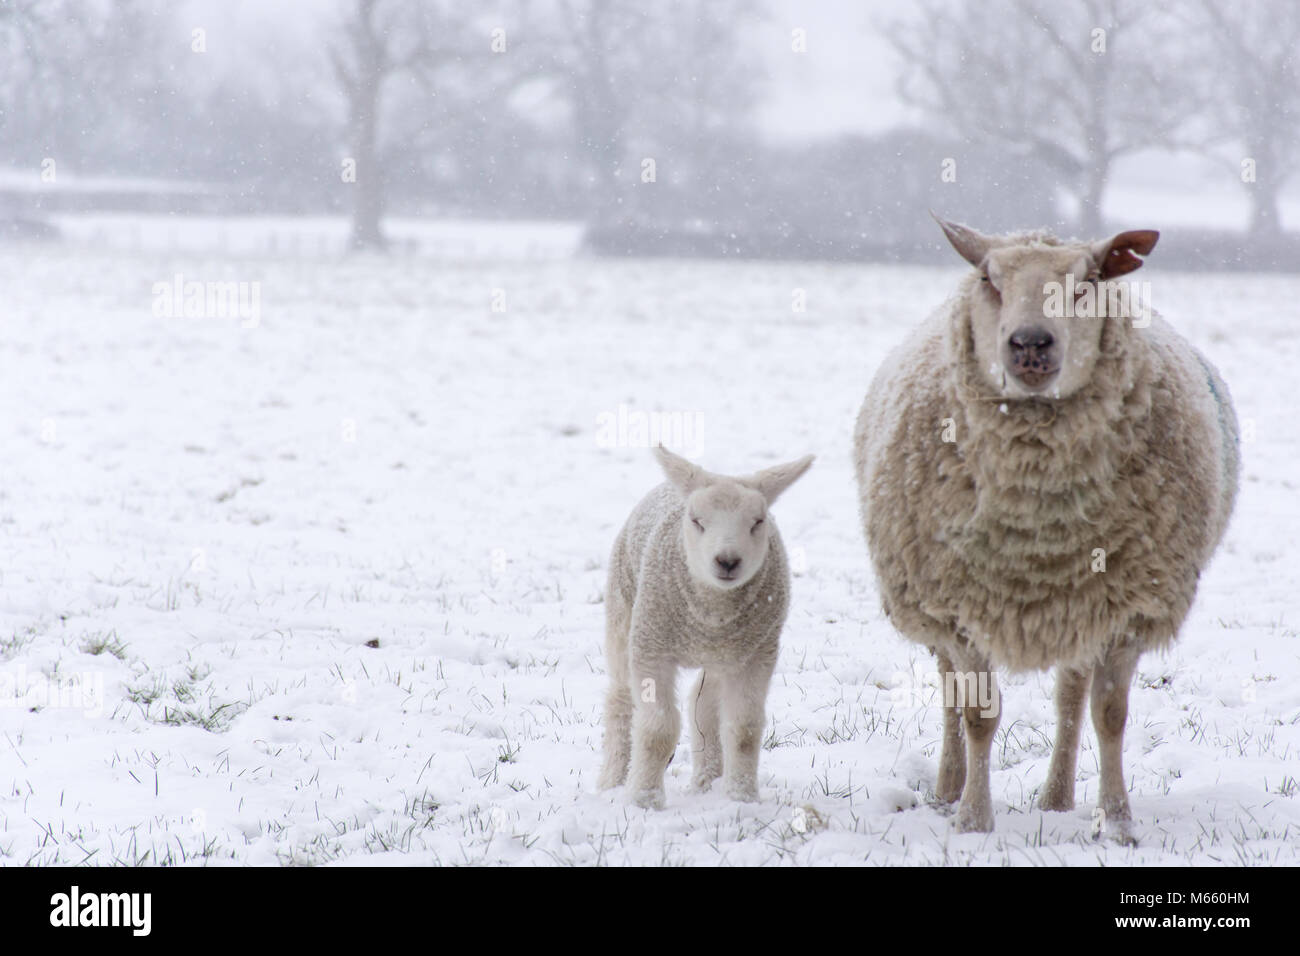 a ewe and her lamb during a heavy snowfall - Stock Image